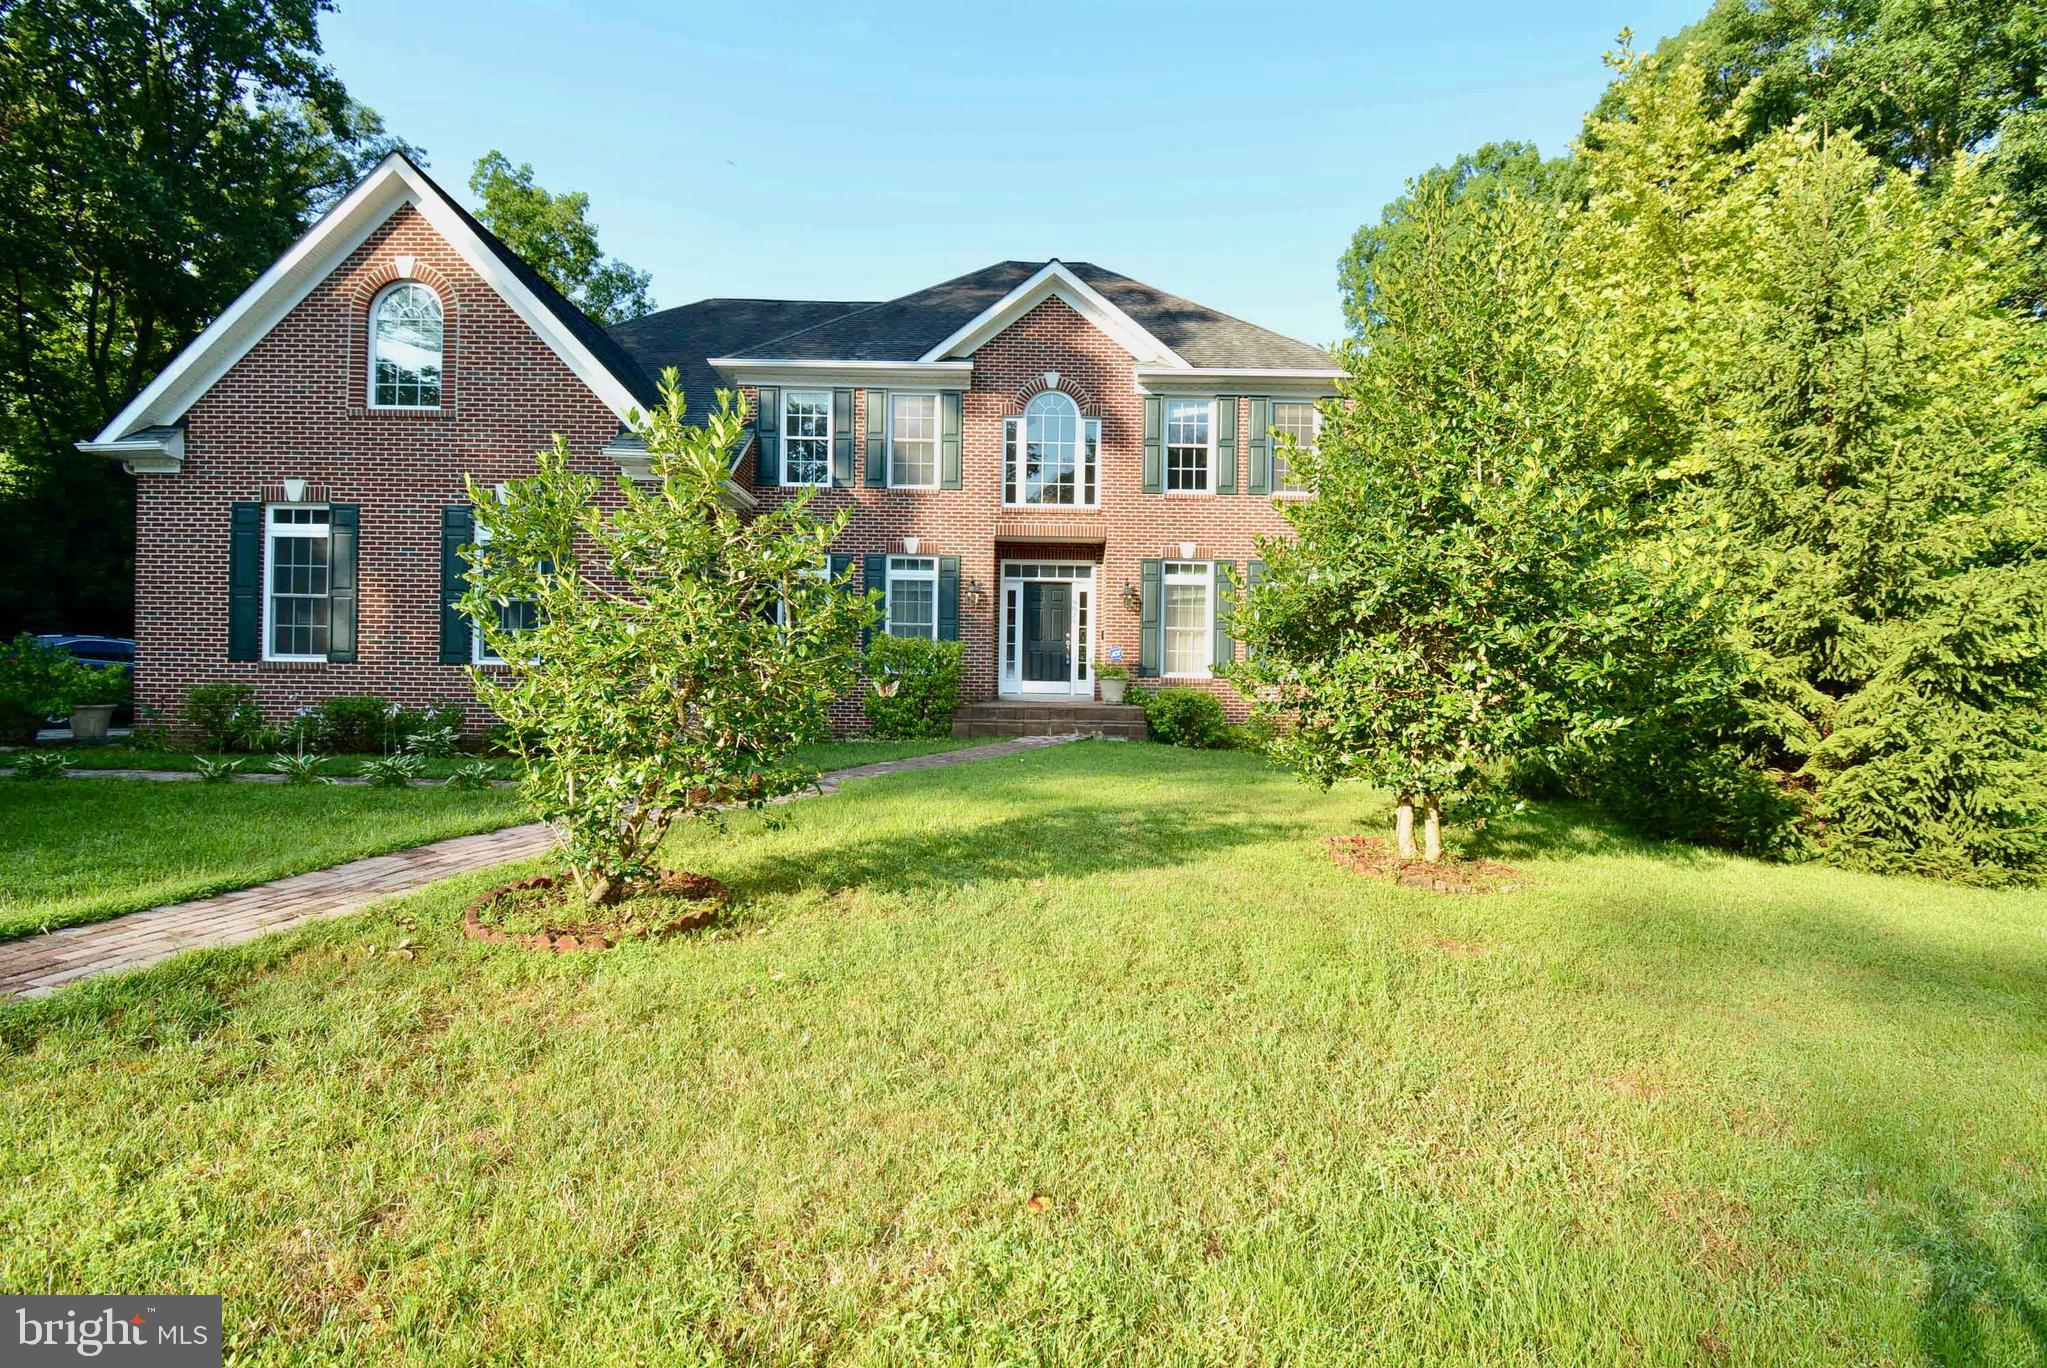 OPEN HOUSE Sun 8/25 1-4pm.  New Price!  Motivated seller has found the home of their choice and is encouraging ALL OFFERS!  This is must-see, beautiful colonial home offers nearly 6,000 sq. ft. of living space.  Built in 2007 and no HOA.  A three-car garage plus driveway space provide ample parking.  The main floor features hardwood or brand new carpets and a two-story, open family room.  The kitchen boasts stainless steel appliances as well as brand new granite counter-tops and walks out onto a large deck with two staircases down to the backyard.  The upper level features four bedrooms accessed by TWO staircases.  The master bedroom features a tray ceiling and a GIGANTIC master bath and walk-in closets.  A finished, walk-out basement on the lower level completes this home with its own bedroom and large full bath.  This home is a must see! Blocks from Laurel Hill Golf Club and South County Middle School and High School.  The Workhouse Arts Center, historic Mason Neck, Fountainhead and Sandy Run Regional Parks just minutes away.  Grocery shopping and restaurants are five minutes away.  Commuting is made easy with proximity to 95, the VRE, Rt. 1, and the Fairfax County Parkway!  No HOA!